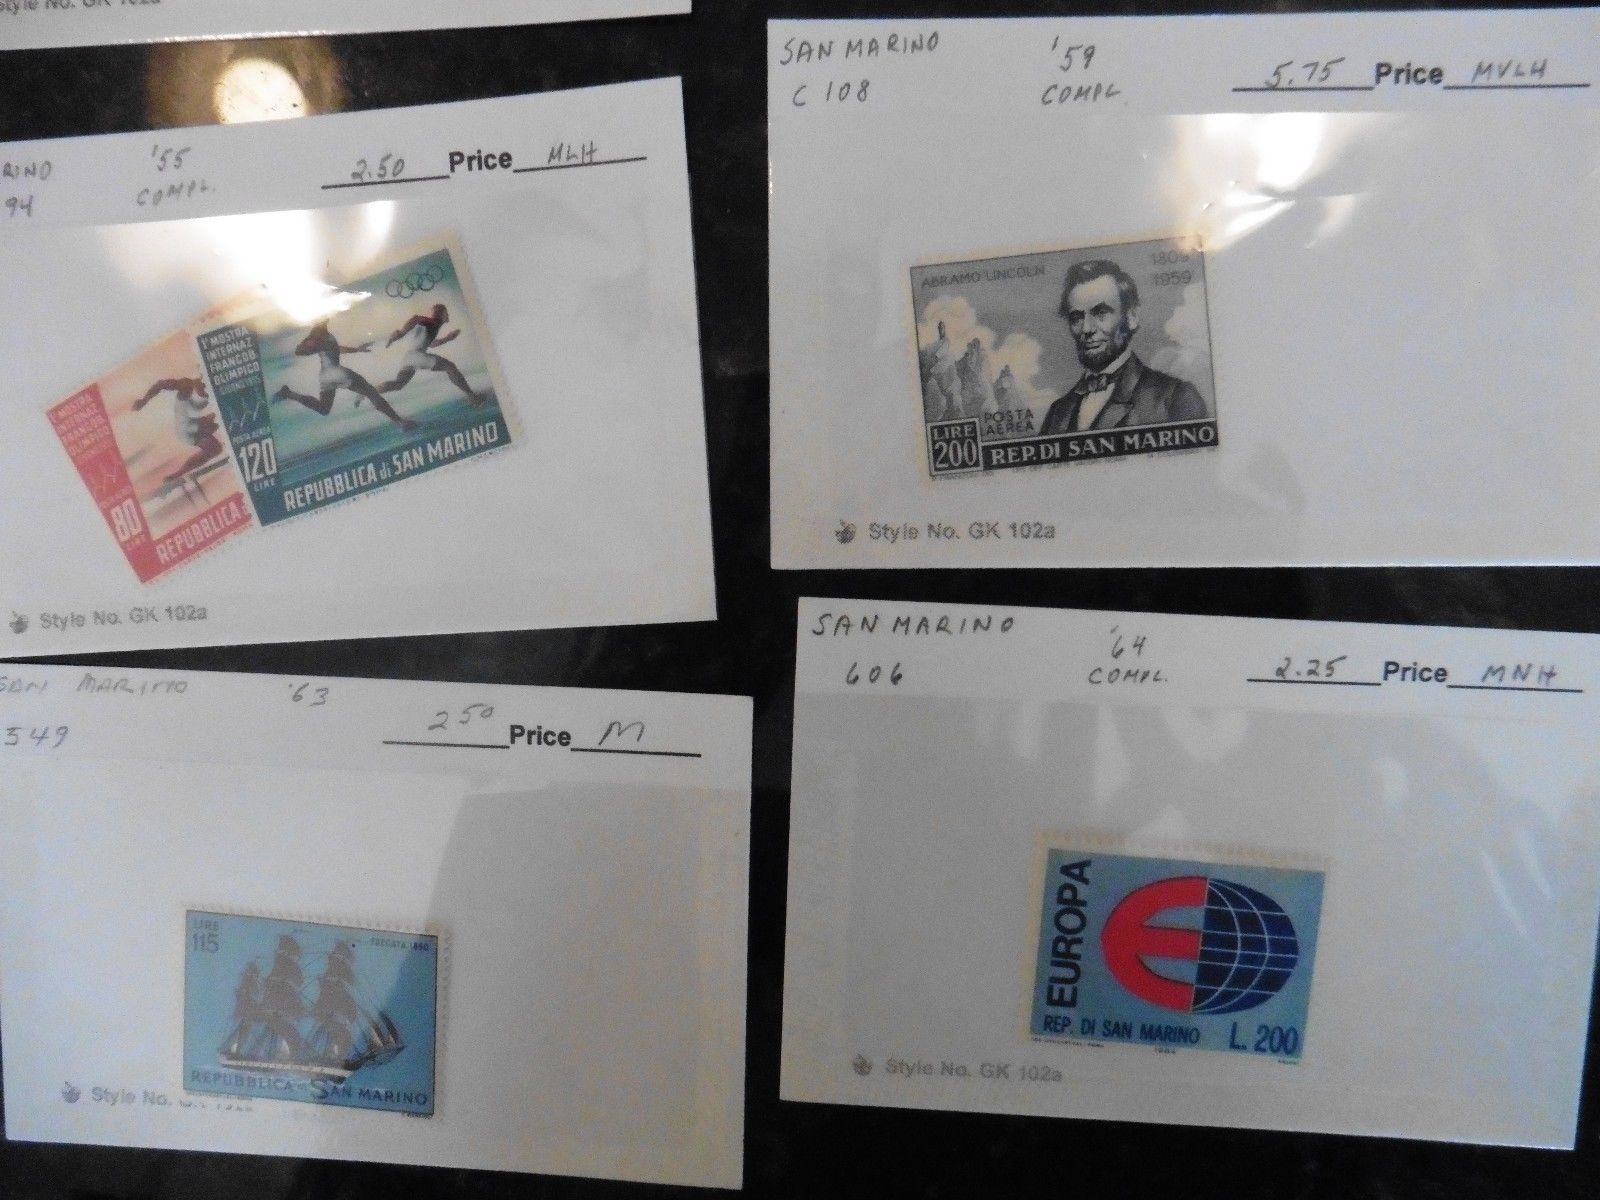 G41 LOT of stamps San Marino 1946 50L stamp day 1947 1c bollo '59 Lincoln 200L +